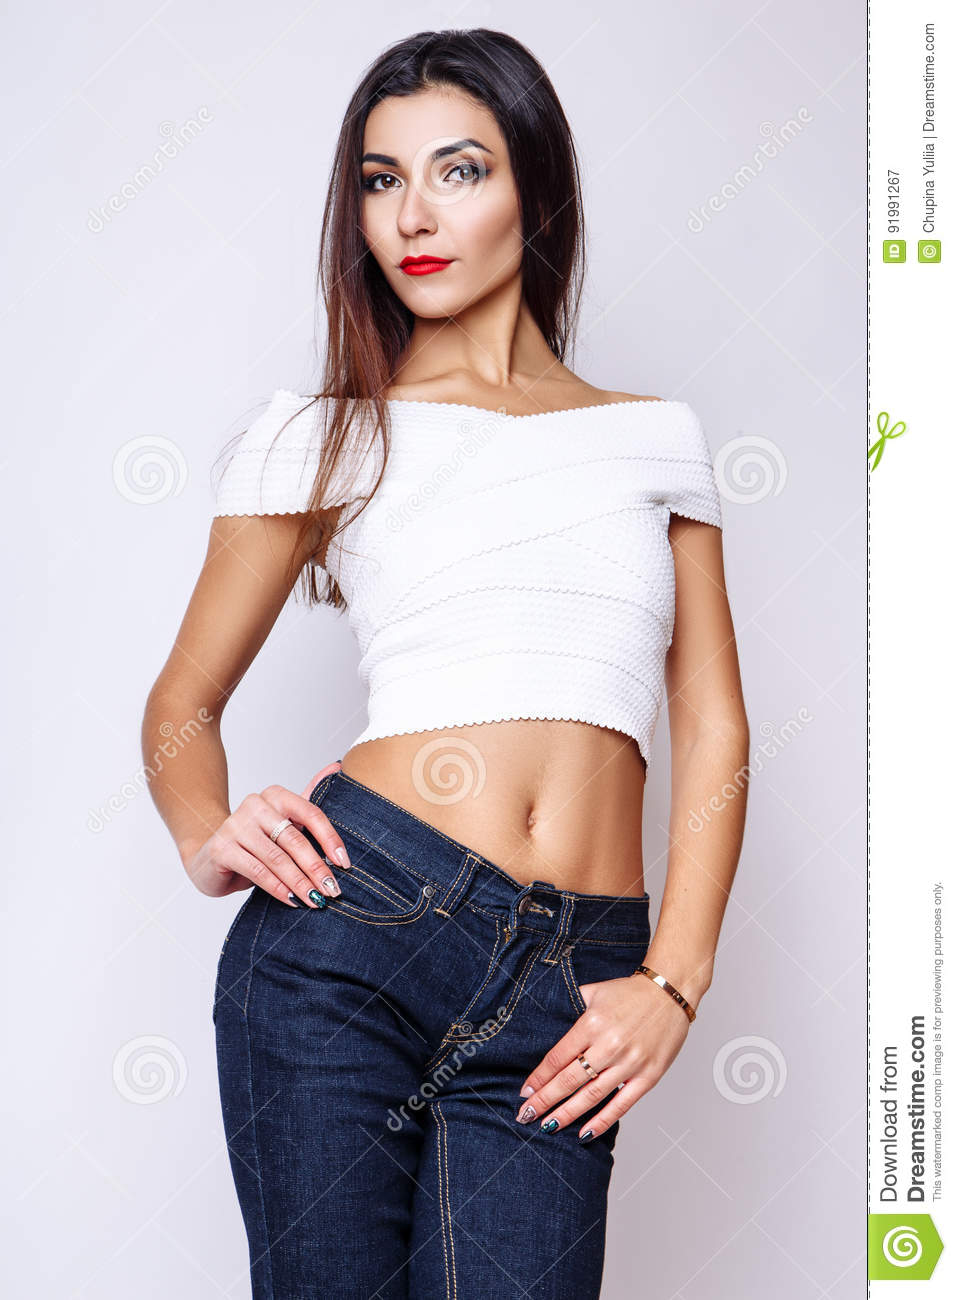 Portrait Of Beautiful Brunette Woman In A White Blouse And Jeans